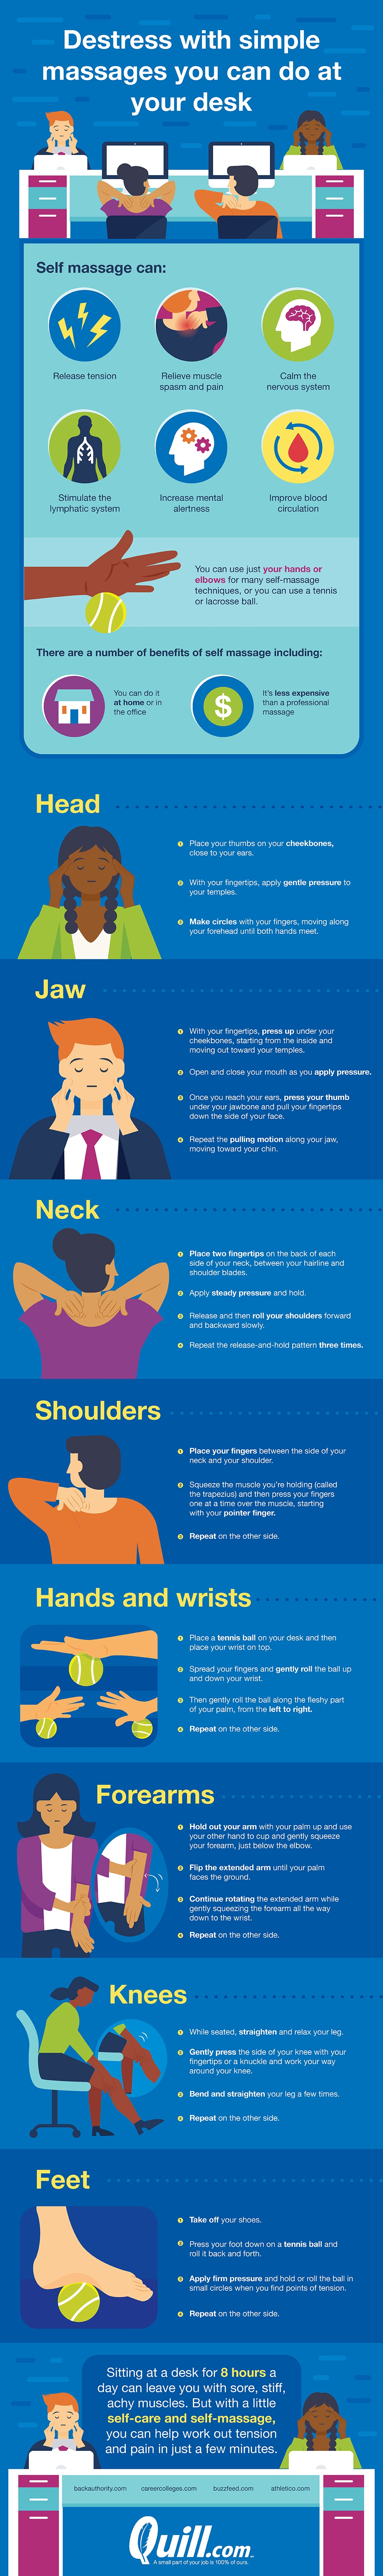 Easy Self-Massage Routines that Can Be Done at Your Desk - Infographic